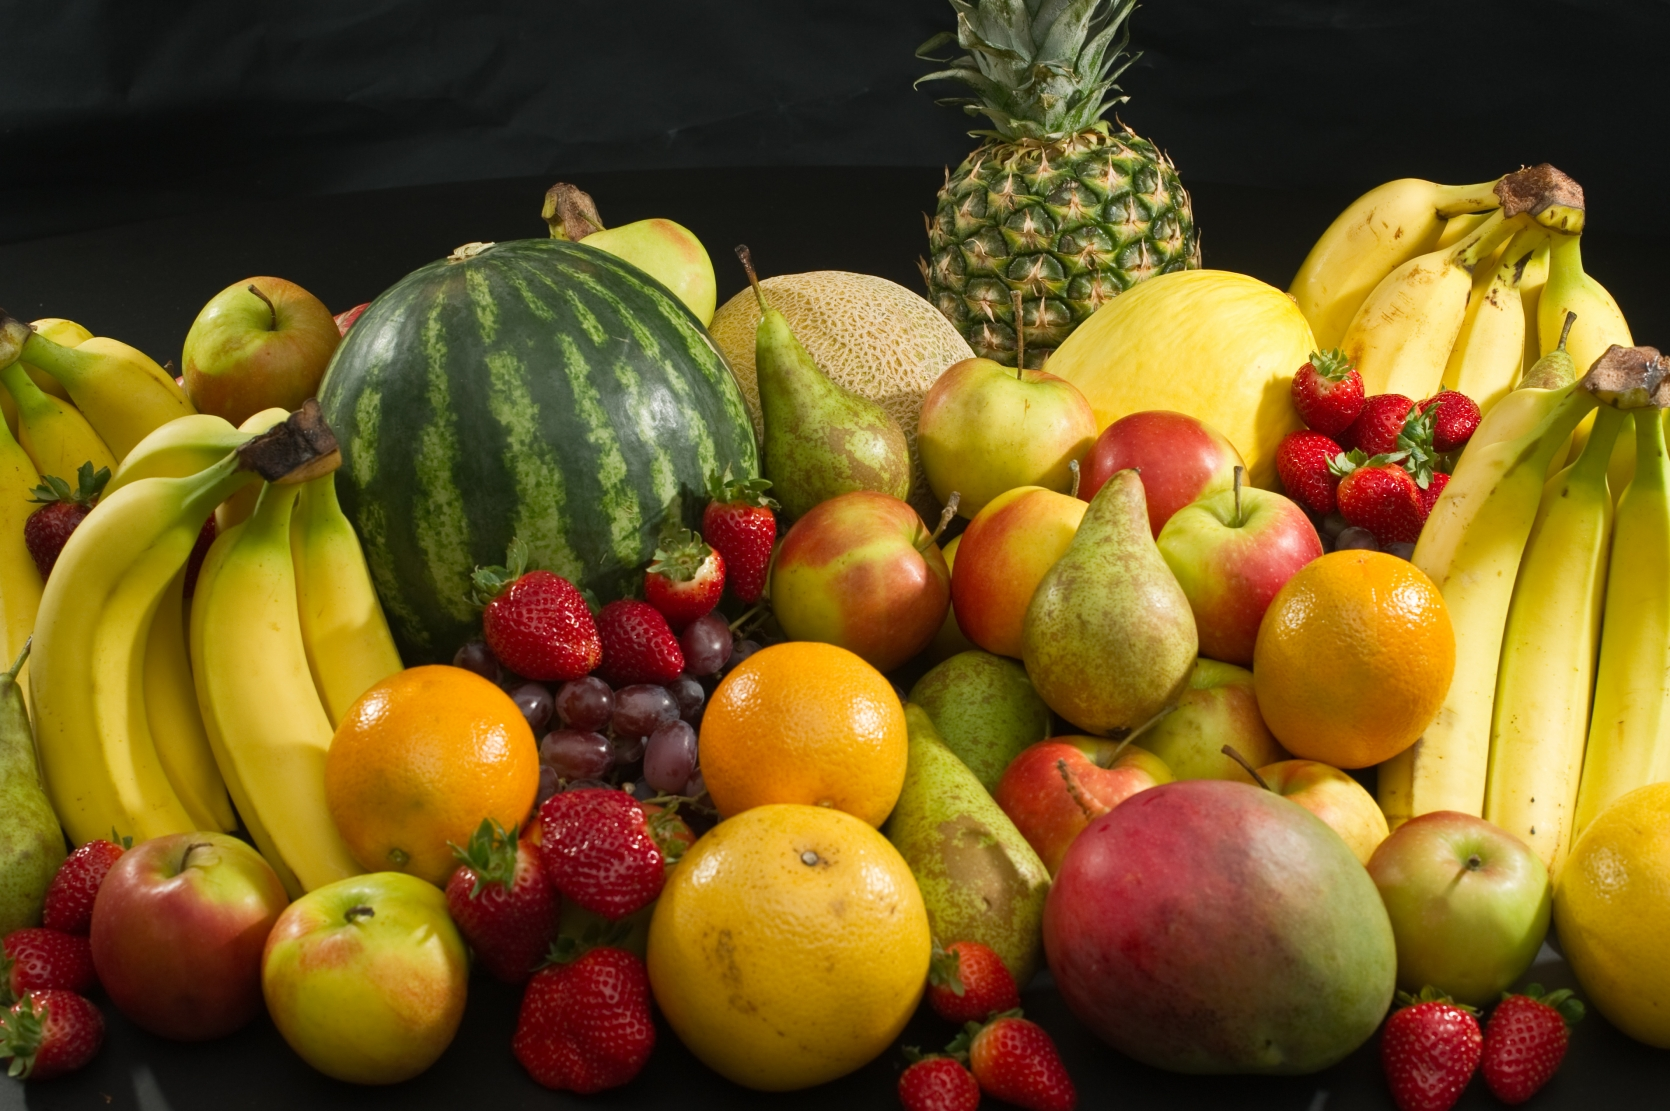 SCIENTISTS ARE STORING ENERGY USING UNEATEN FRUIT